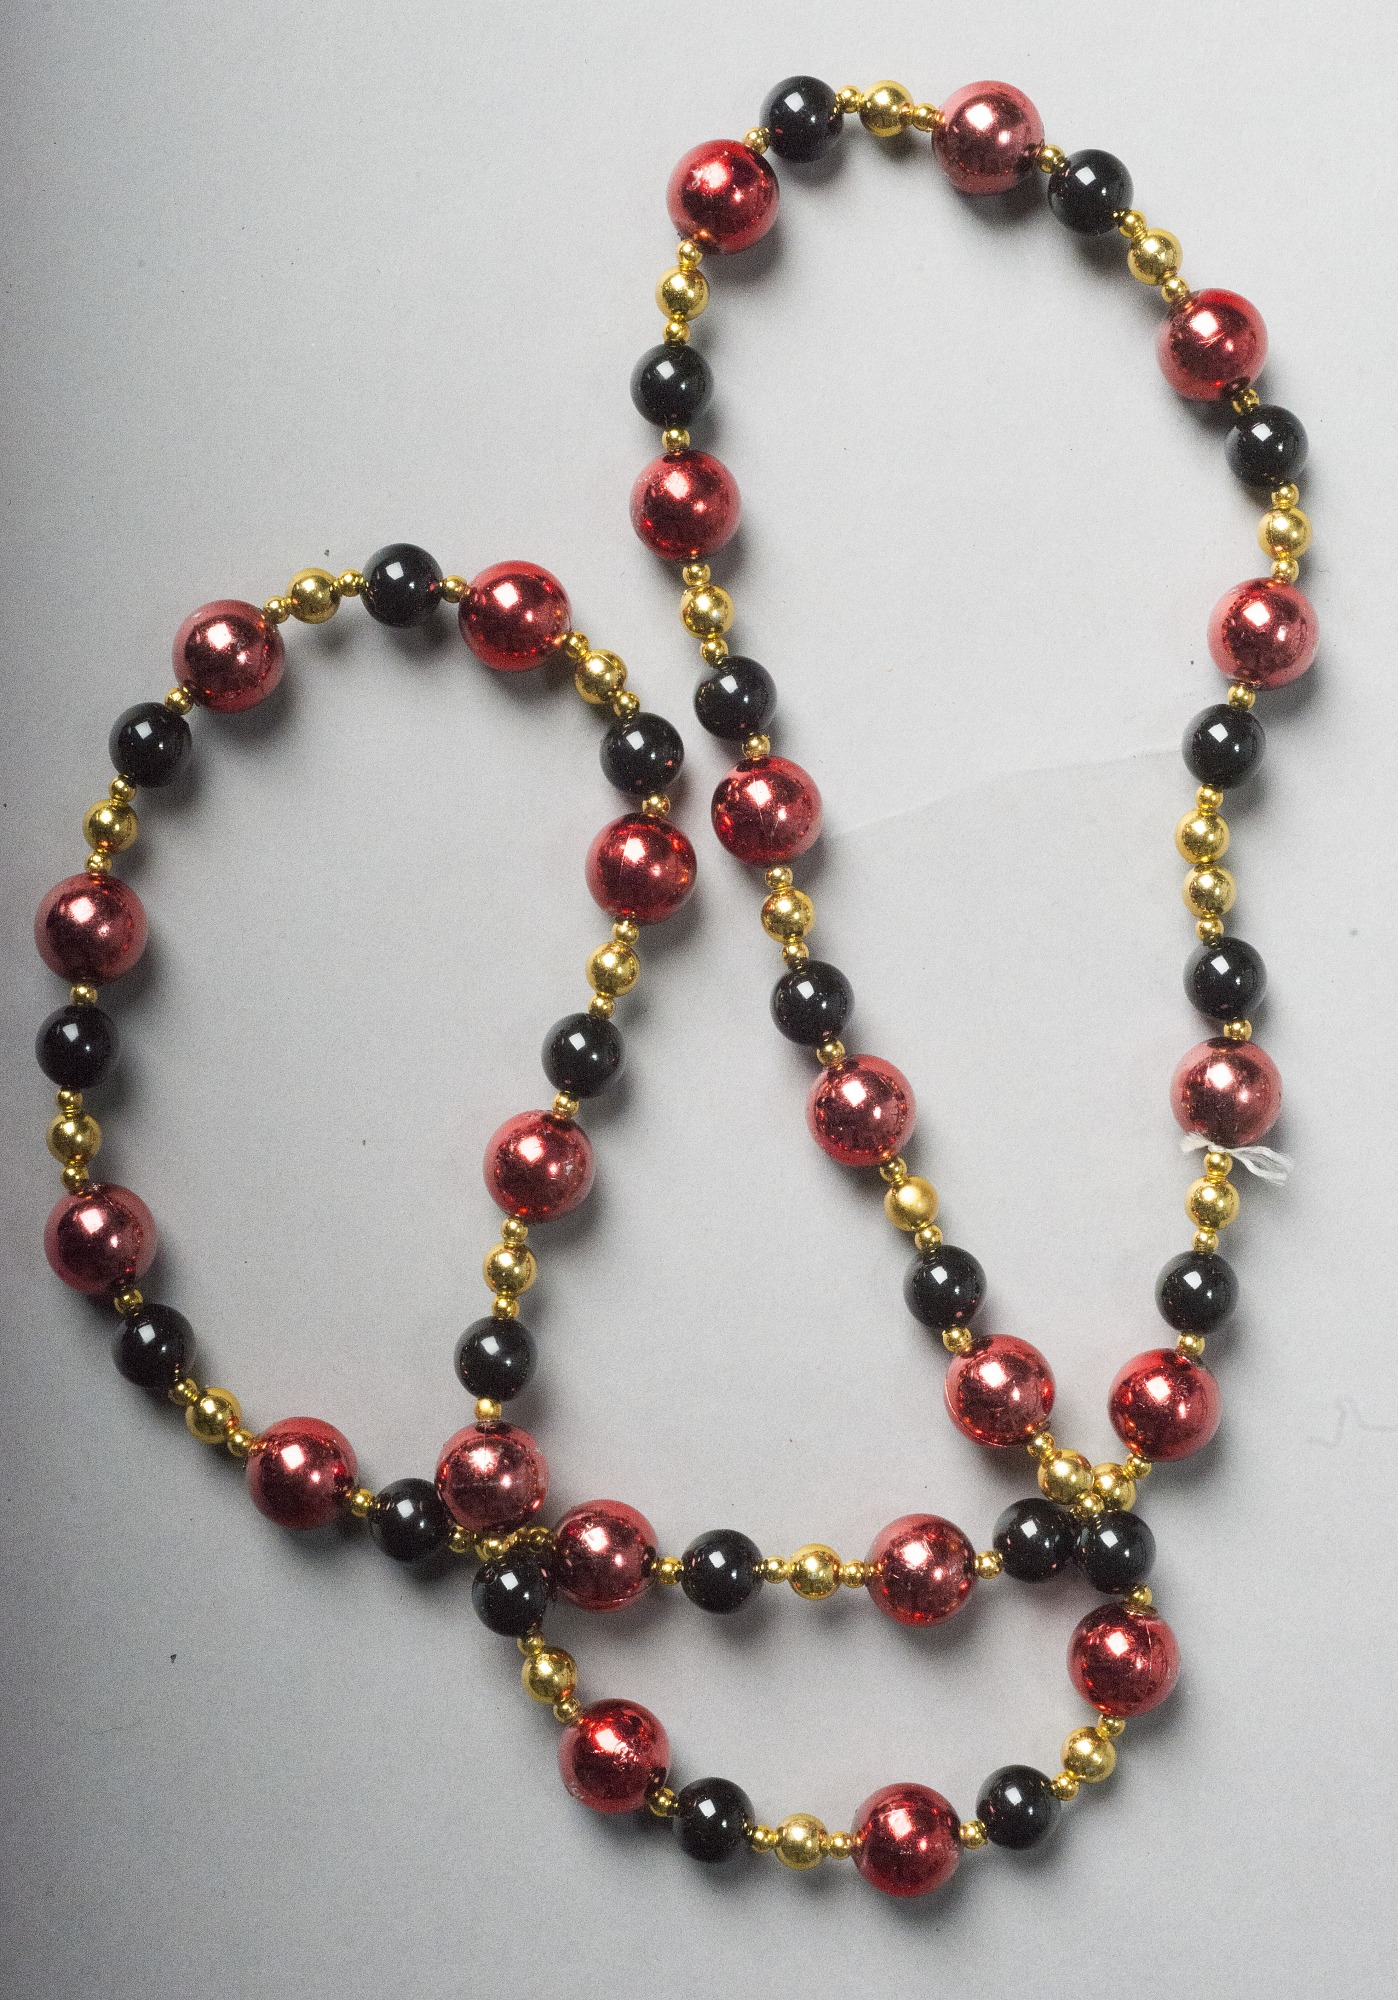 images for Mardi Gras beads (red,gold, black)